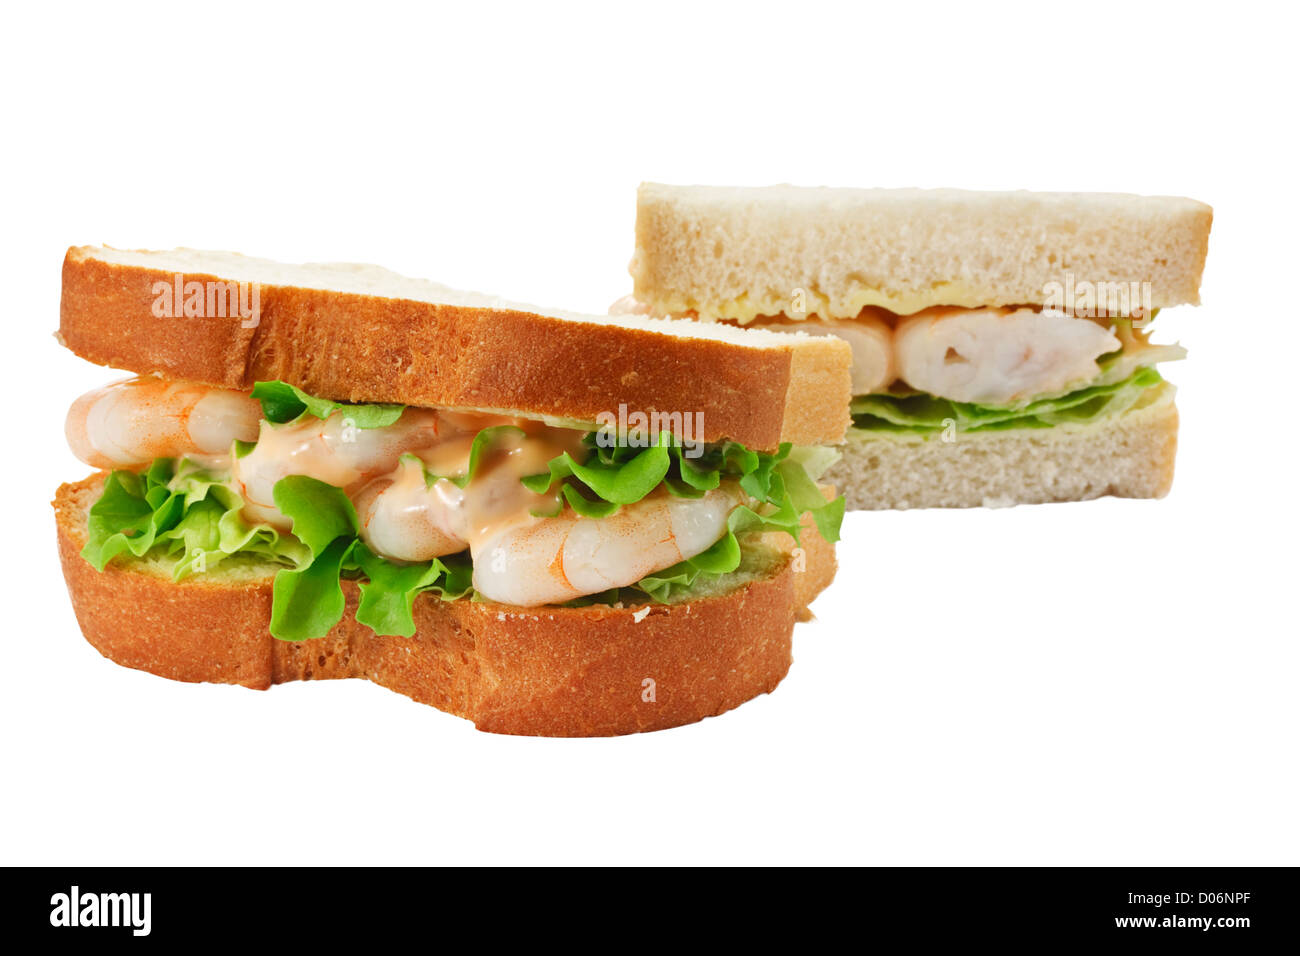 A king prawn salad sandwich with seafood sauce made with freshly sliced bread - Stock Image